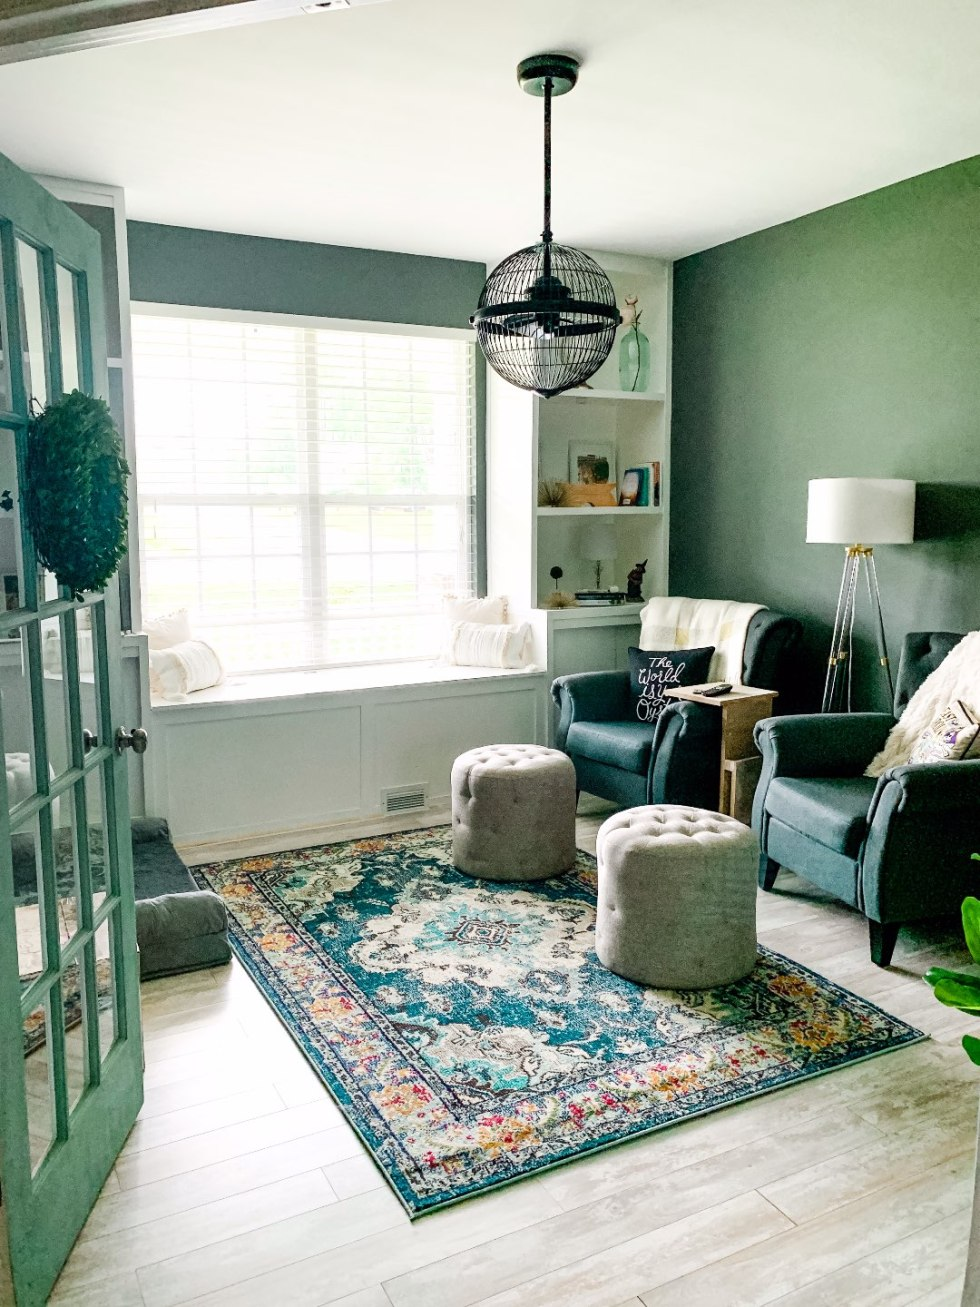 Second Year Updates to Our Ranch - I'm Fixin' To - @mbg0112 | Our Updated Ranch House by popular North Carolina life and style blog, I'm Fixin' To: image of a sitting room in an updated ranch house decorated with Chairs, Ottomans, Lamp, Rug, Fandelier, Pillow Covers